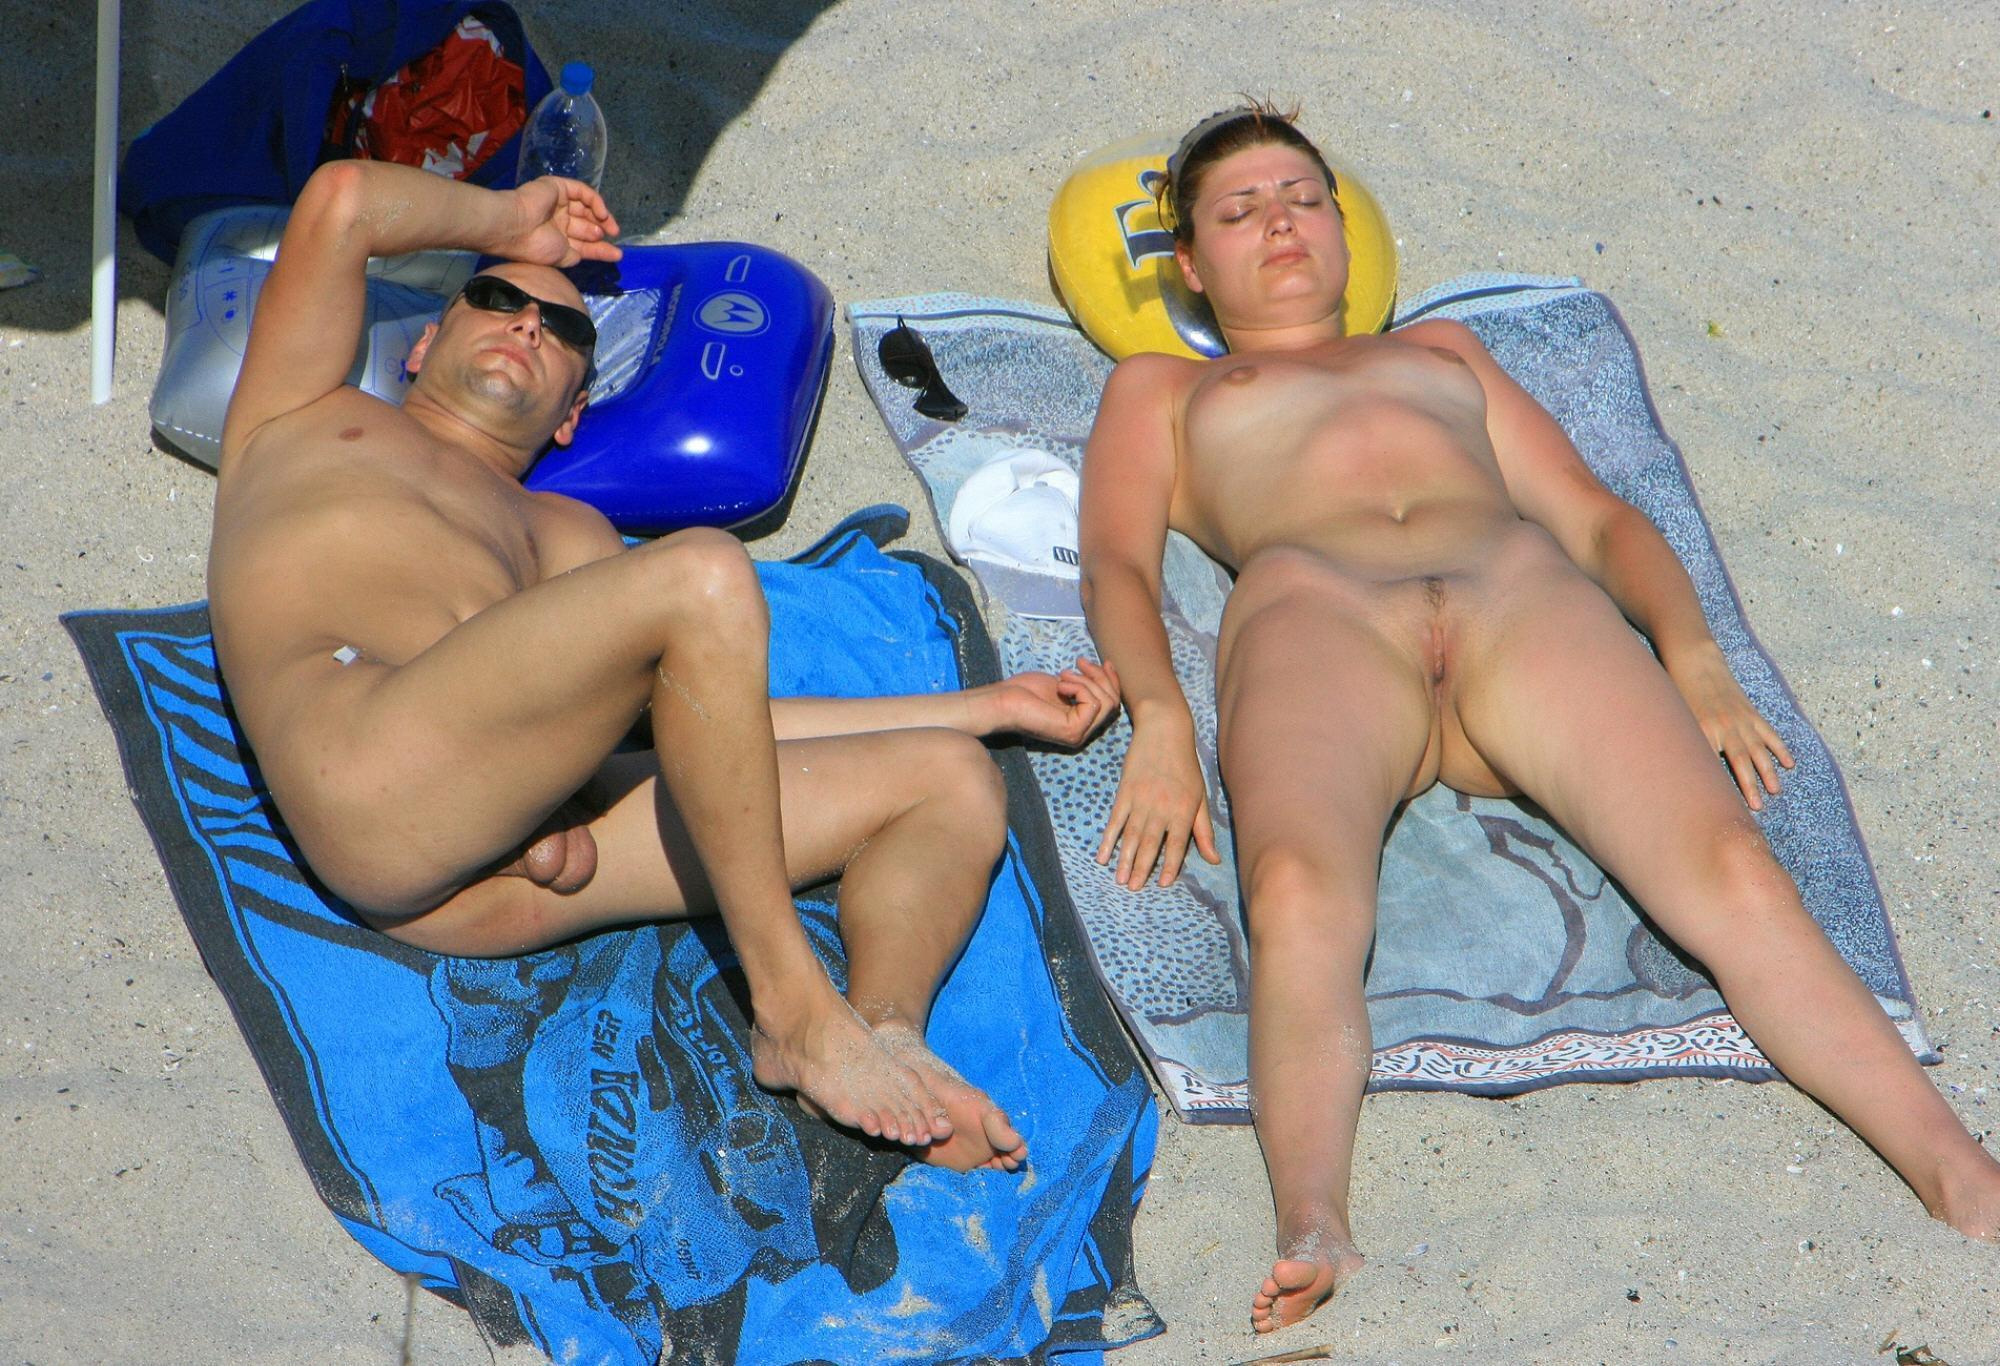 Nudist couple exposed by curious voyeurs